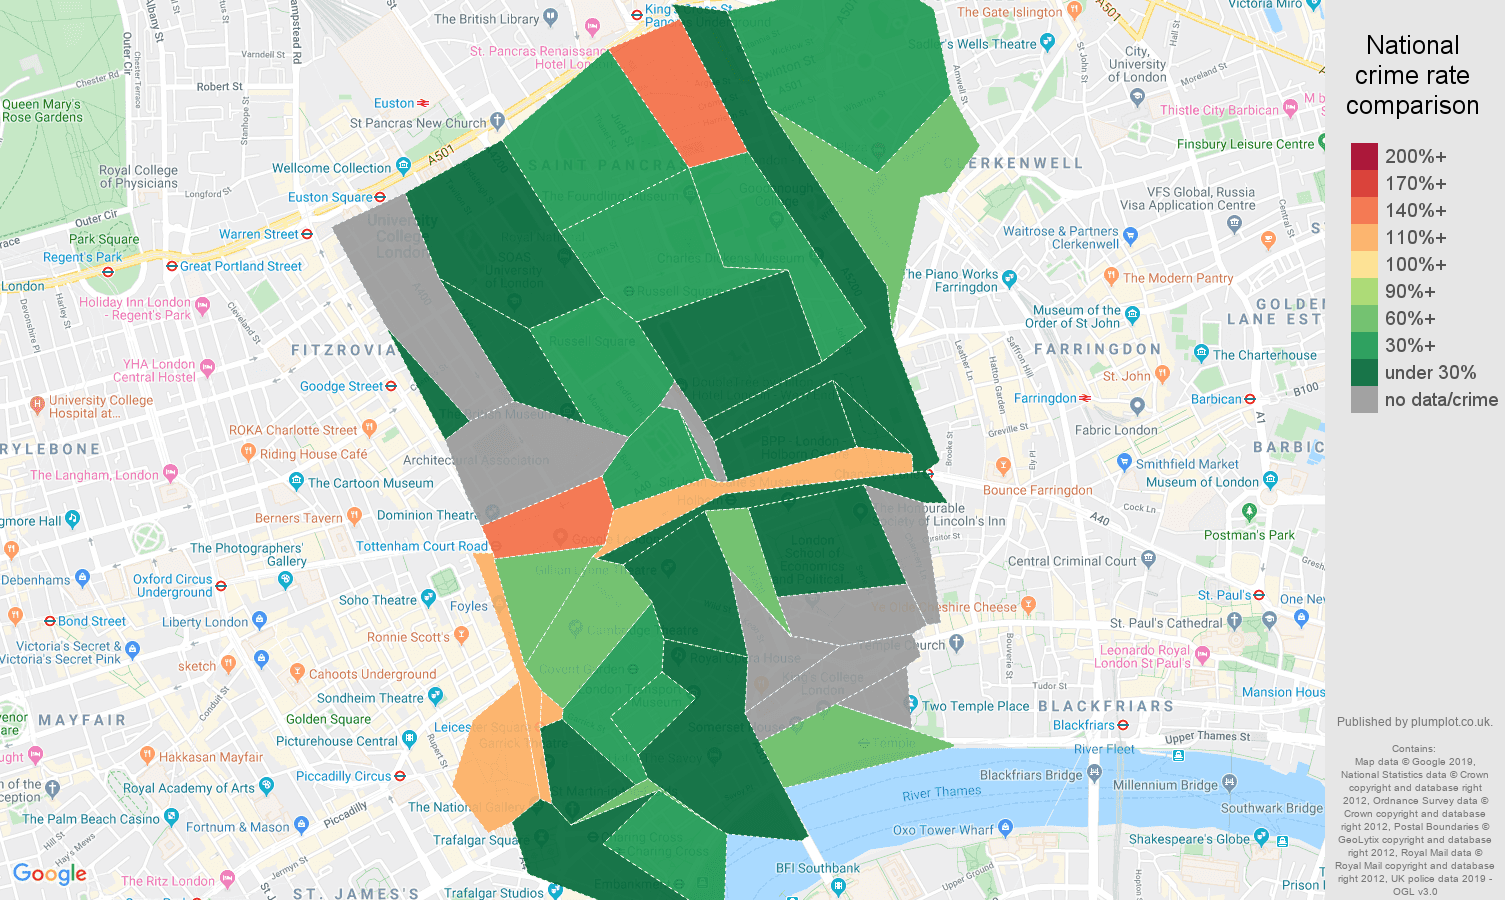 Western Central London other crime rate comparison map